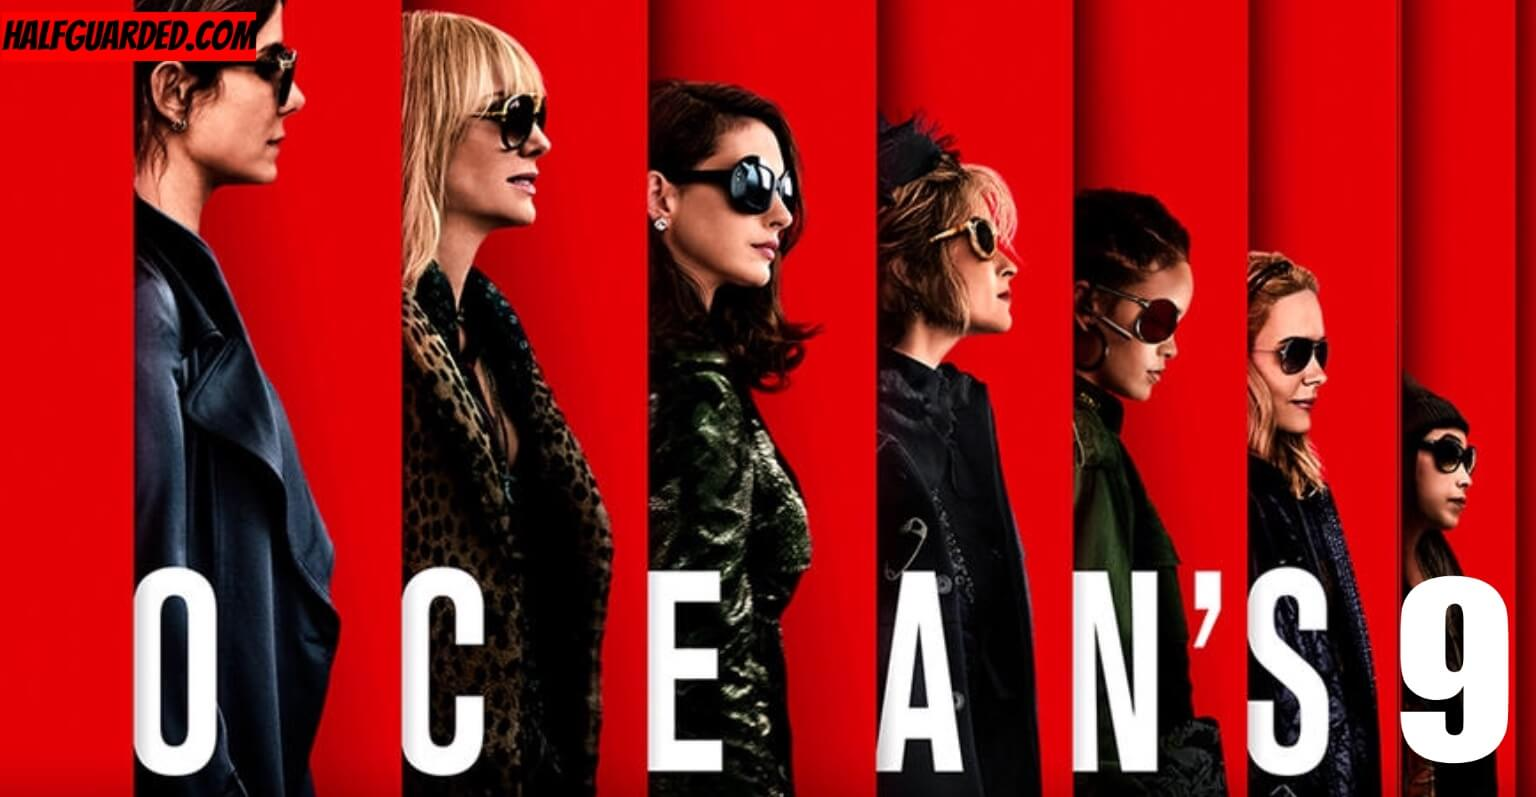 Ocean's 9 (2021) RUMORS & NEWS - SHOULD THERE BE a Ocean's 9?!